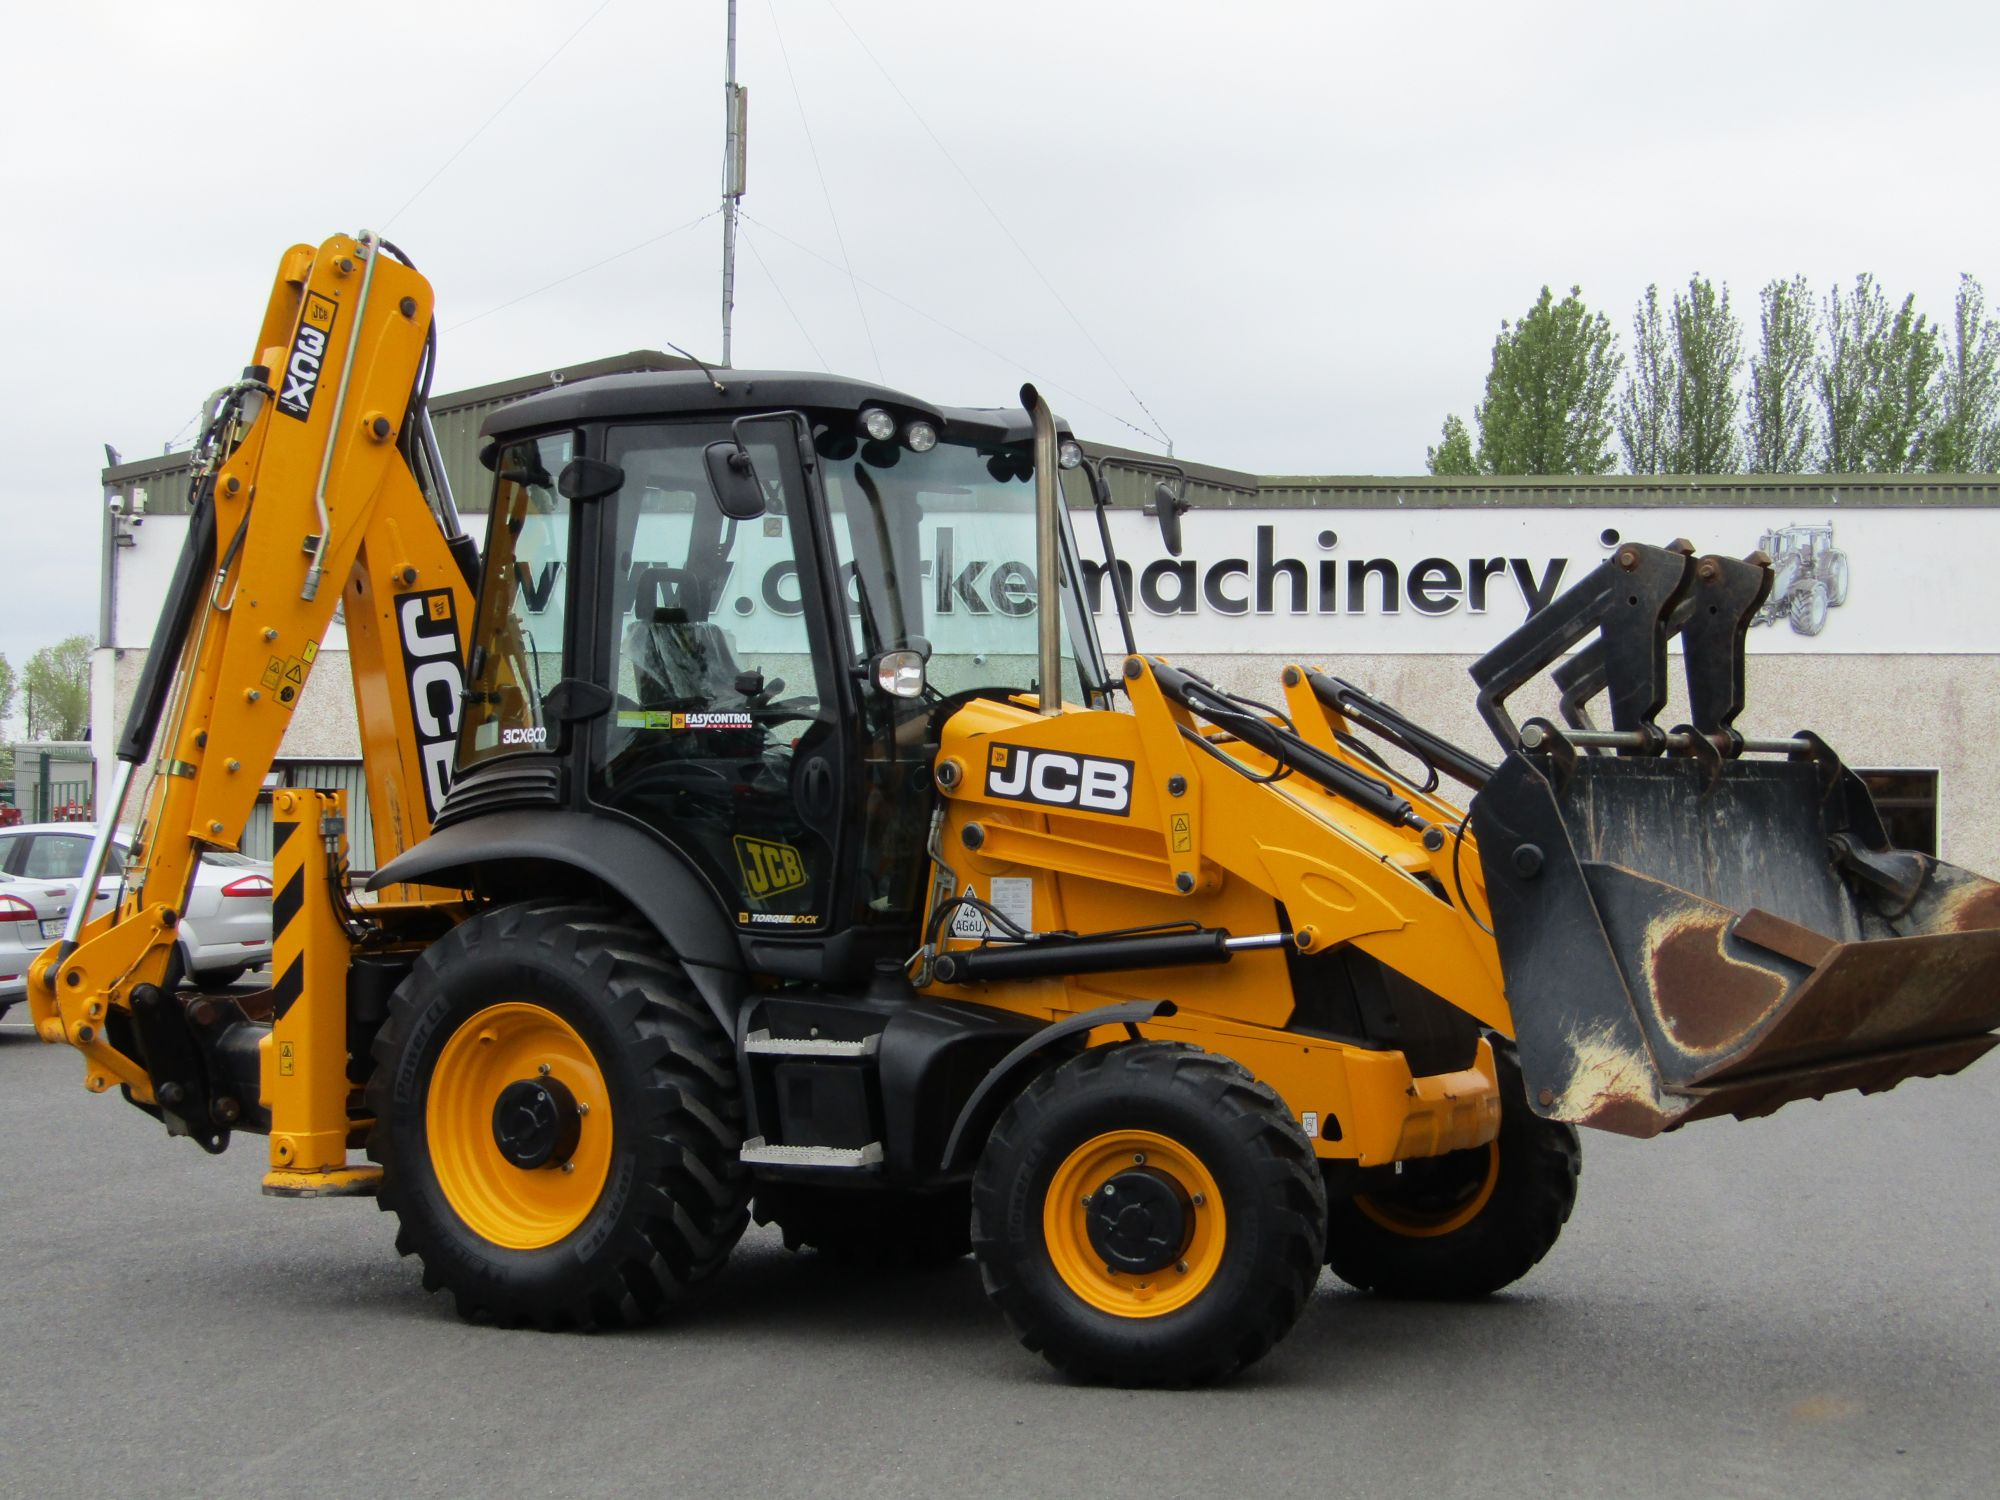 JCB 3CX Backhoe Loader | Clarke Machinery